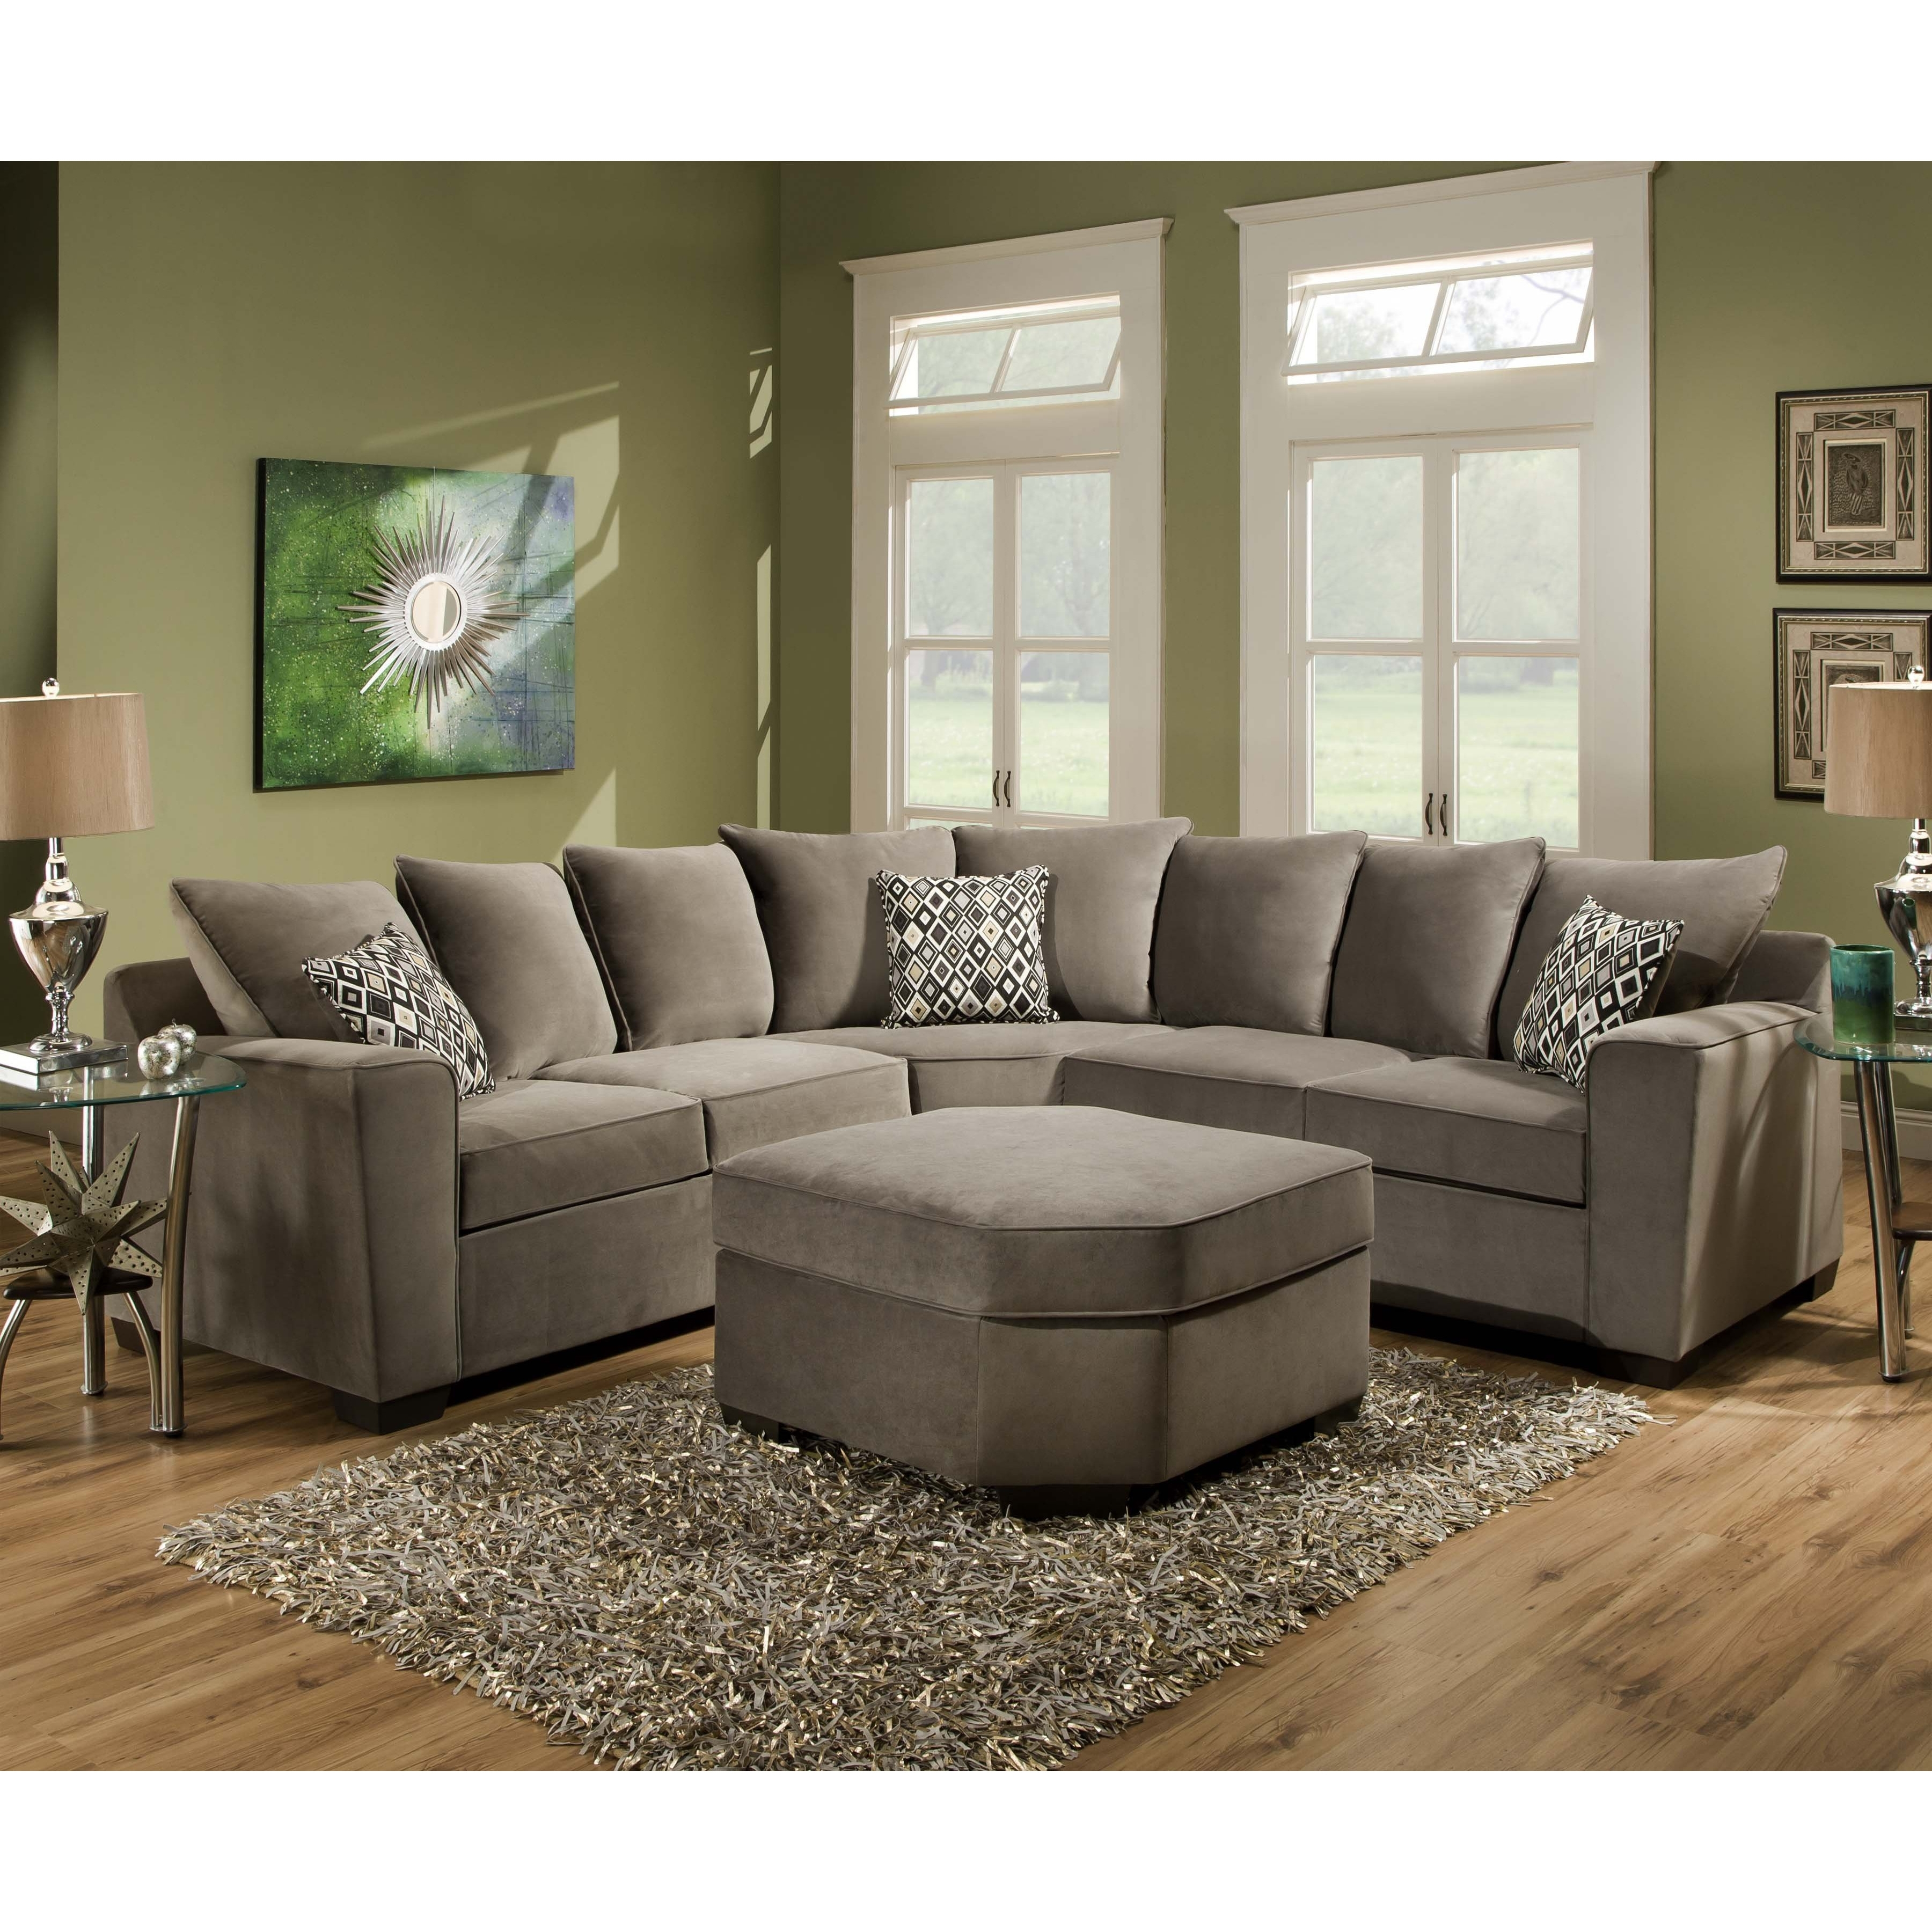 Beautiful American Freight Sofas With Additional Decorating American Regarding Pittsburgh Sectional Sofas (View 2 of 10)